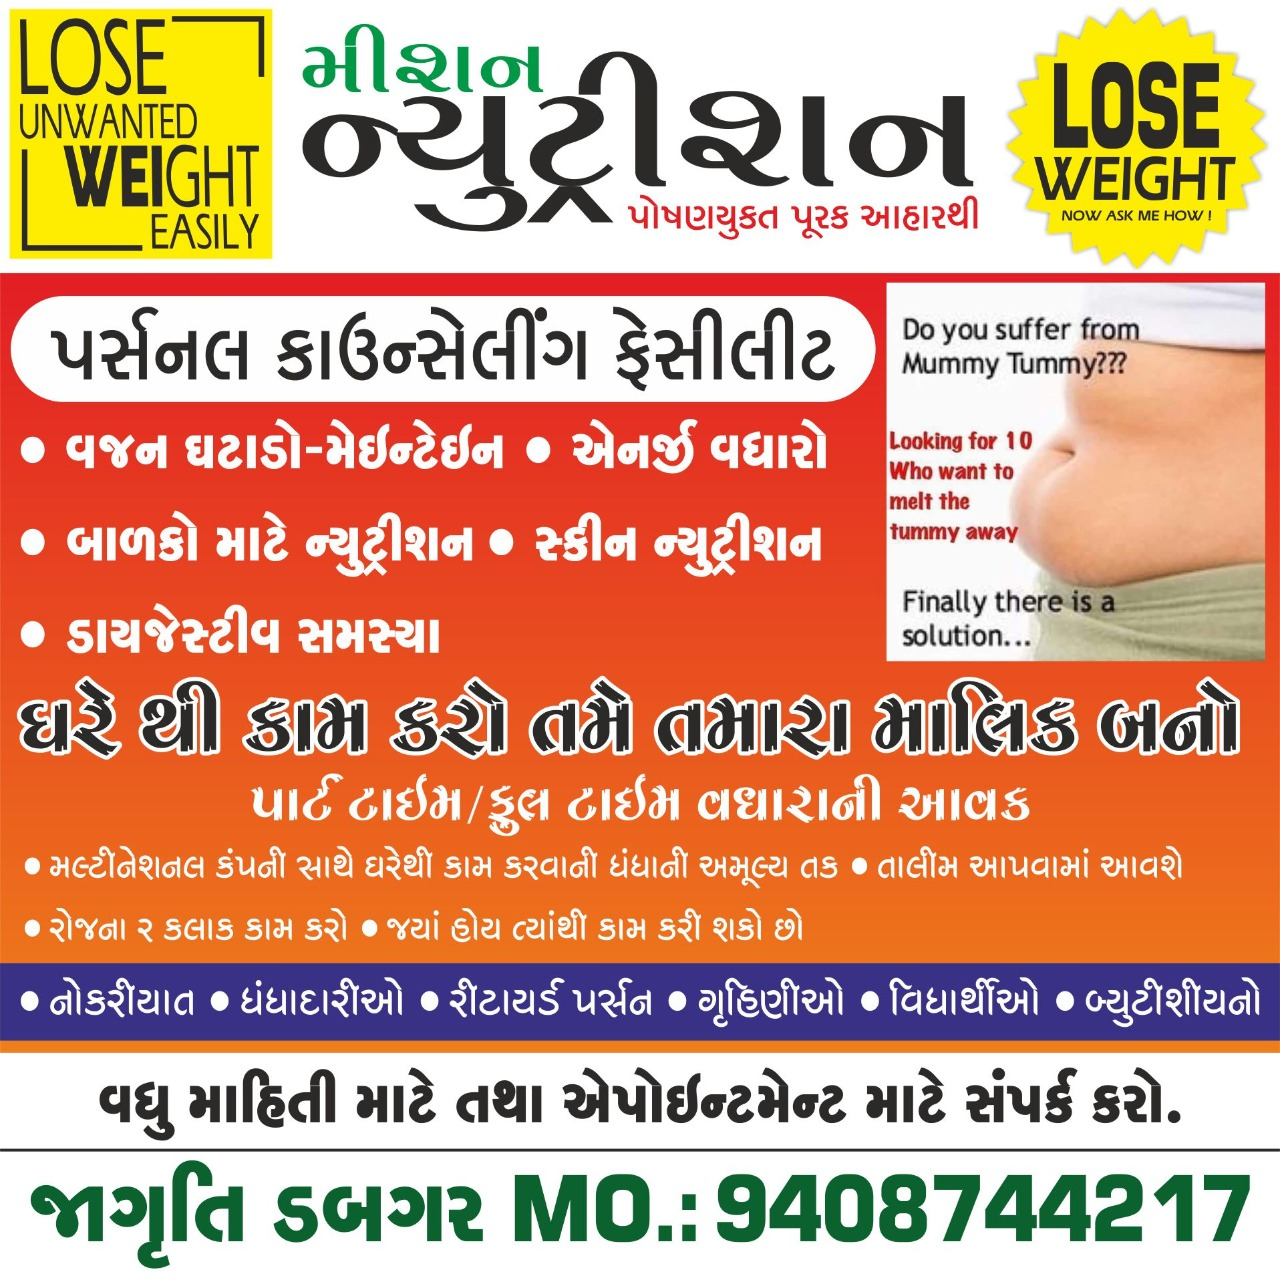 Weight Gain / Loss Specialist in Thasra | Tachukdi Ad (www.tachukdiad.com)